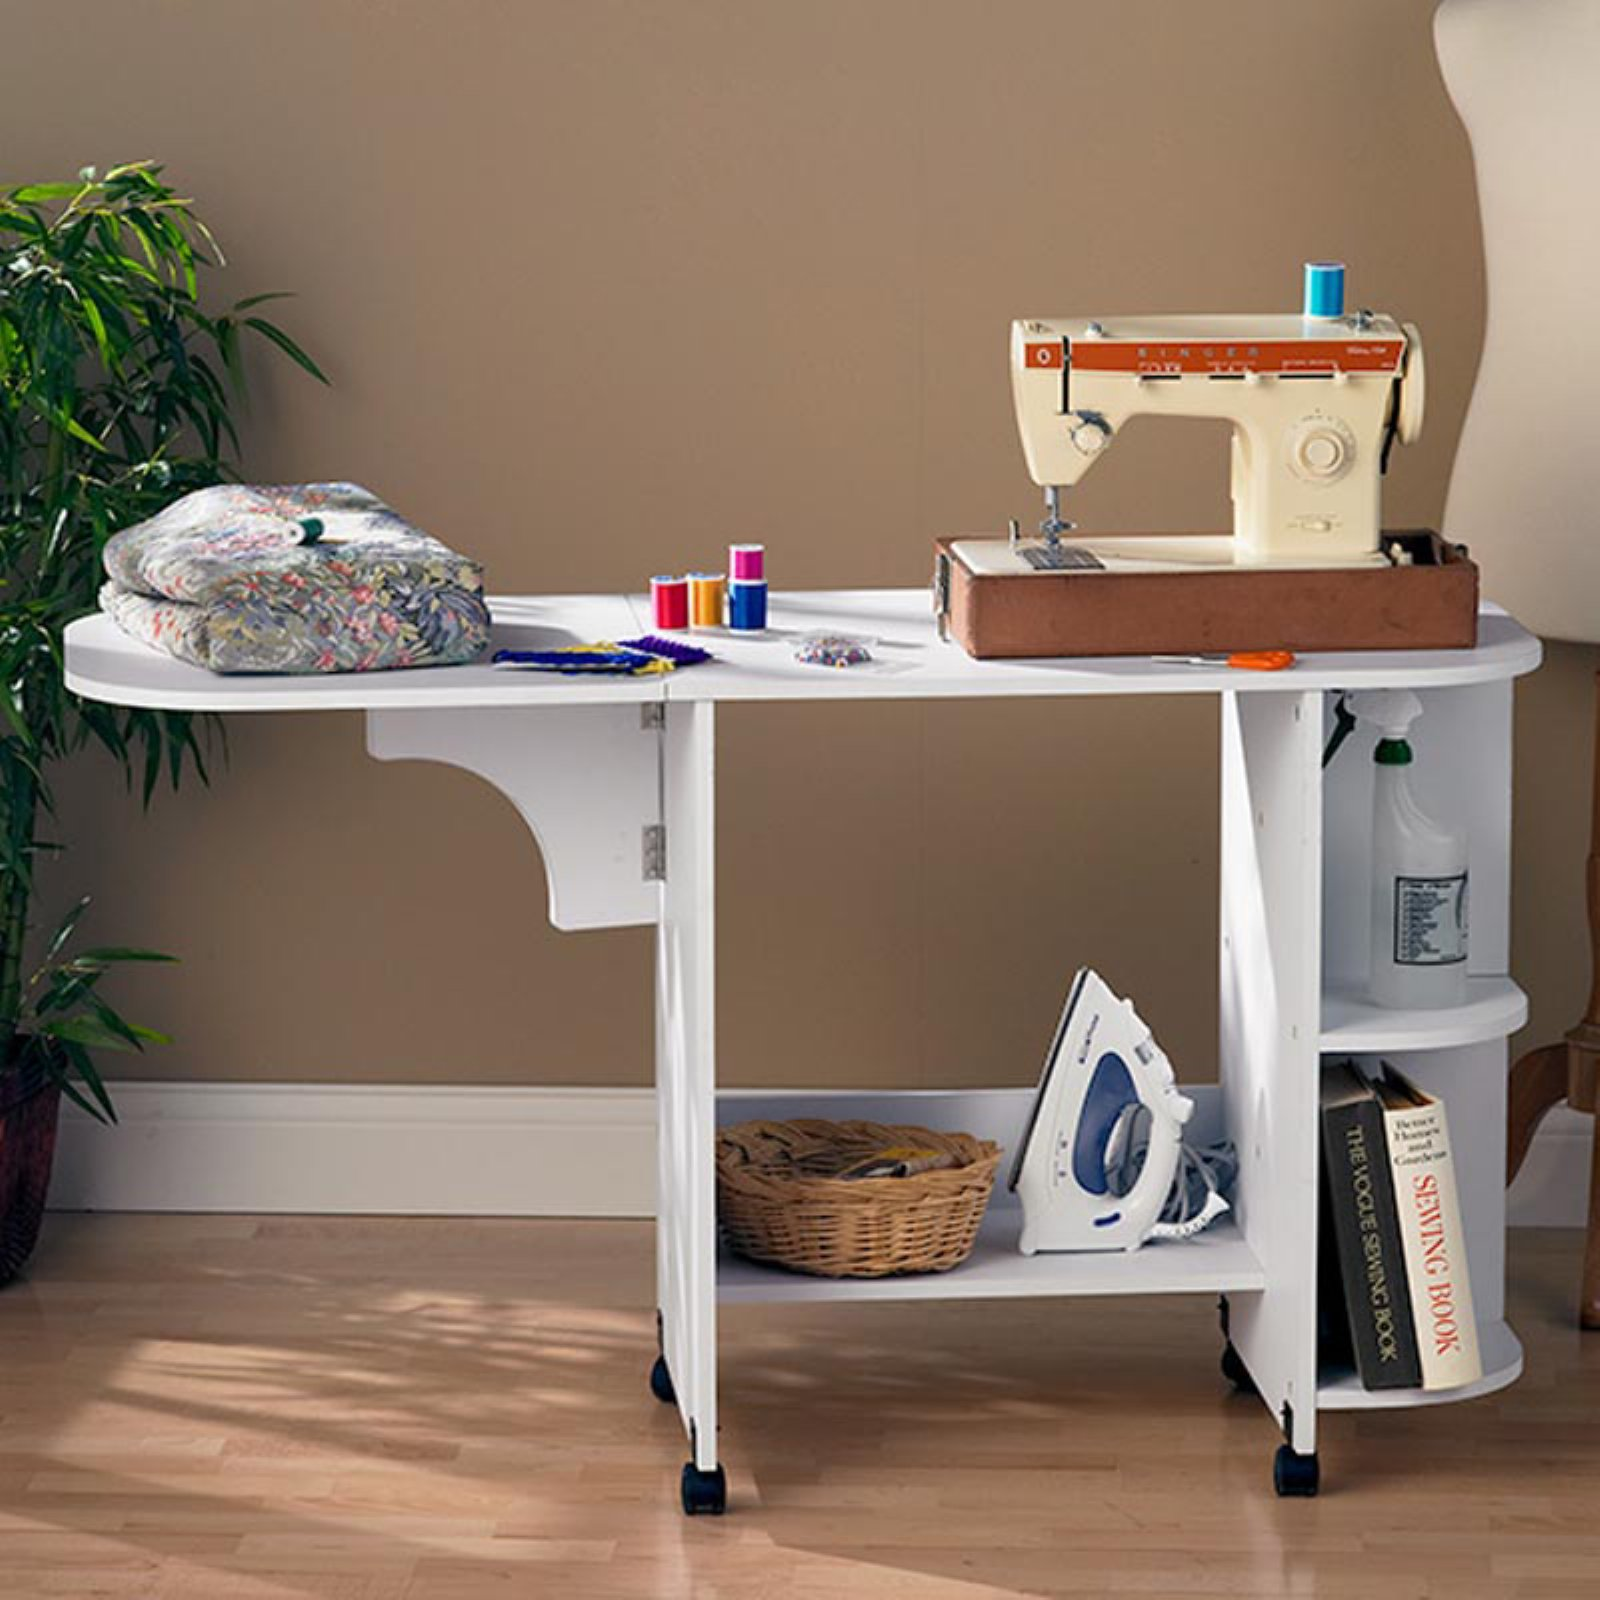 Southern Enterprises Expandable Rolling Sewing Table/Craft Station,White